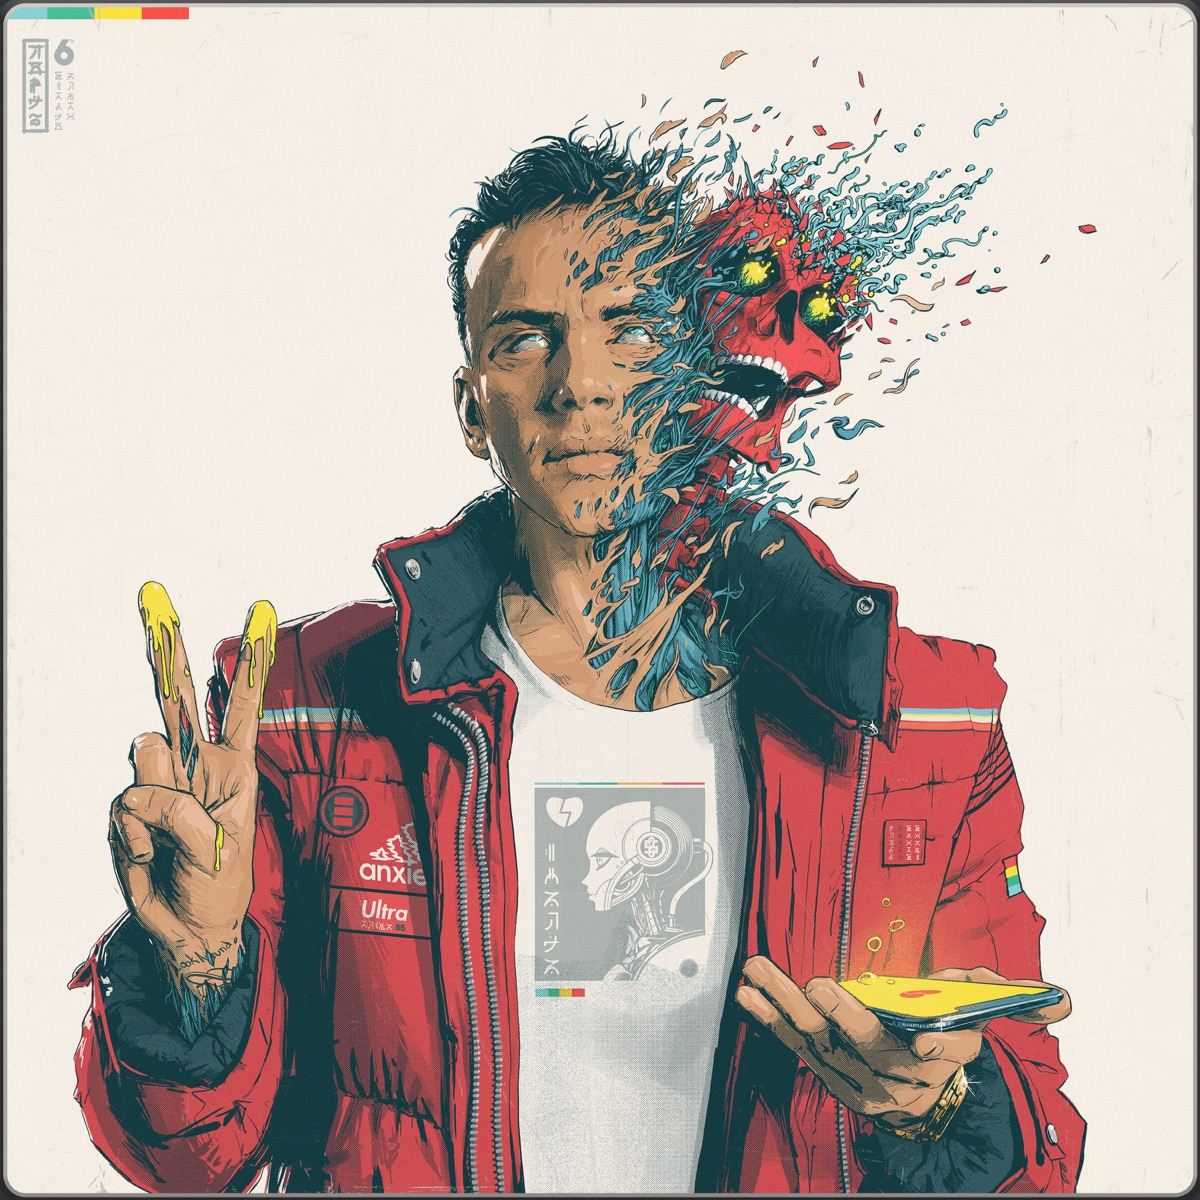 Confessions of a Dangerous Mind Logic CD cover